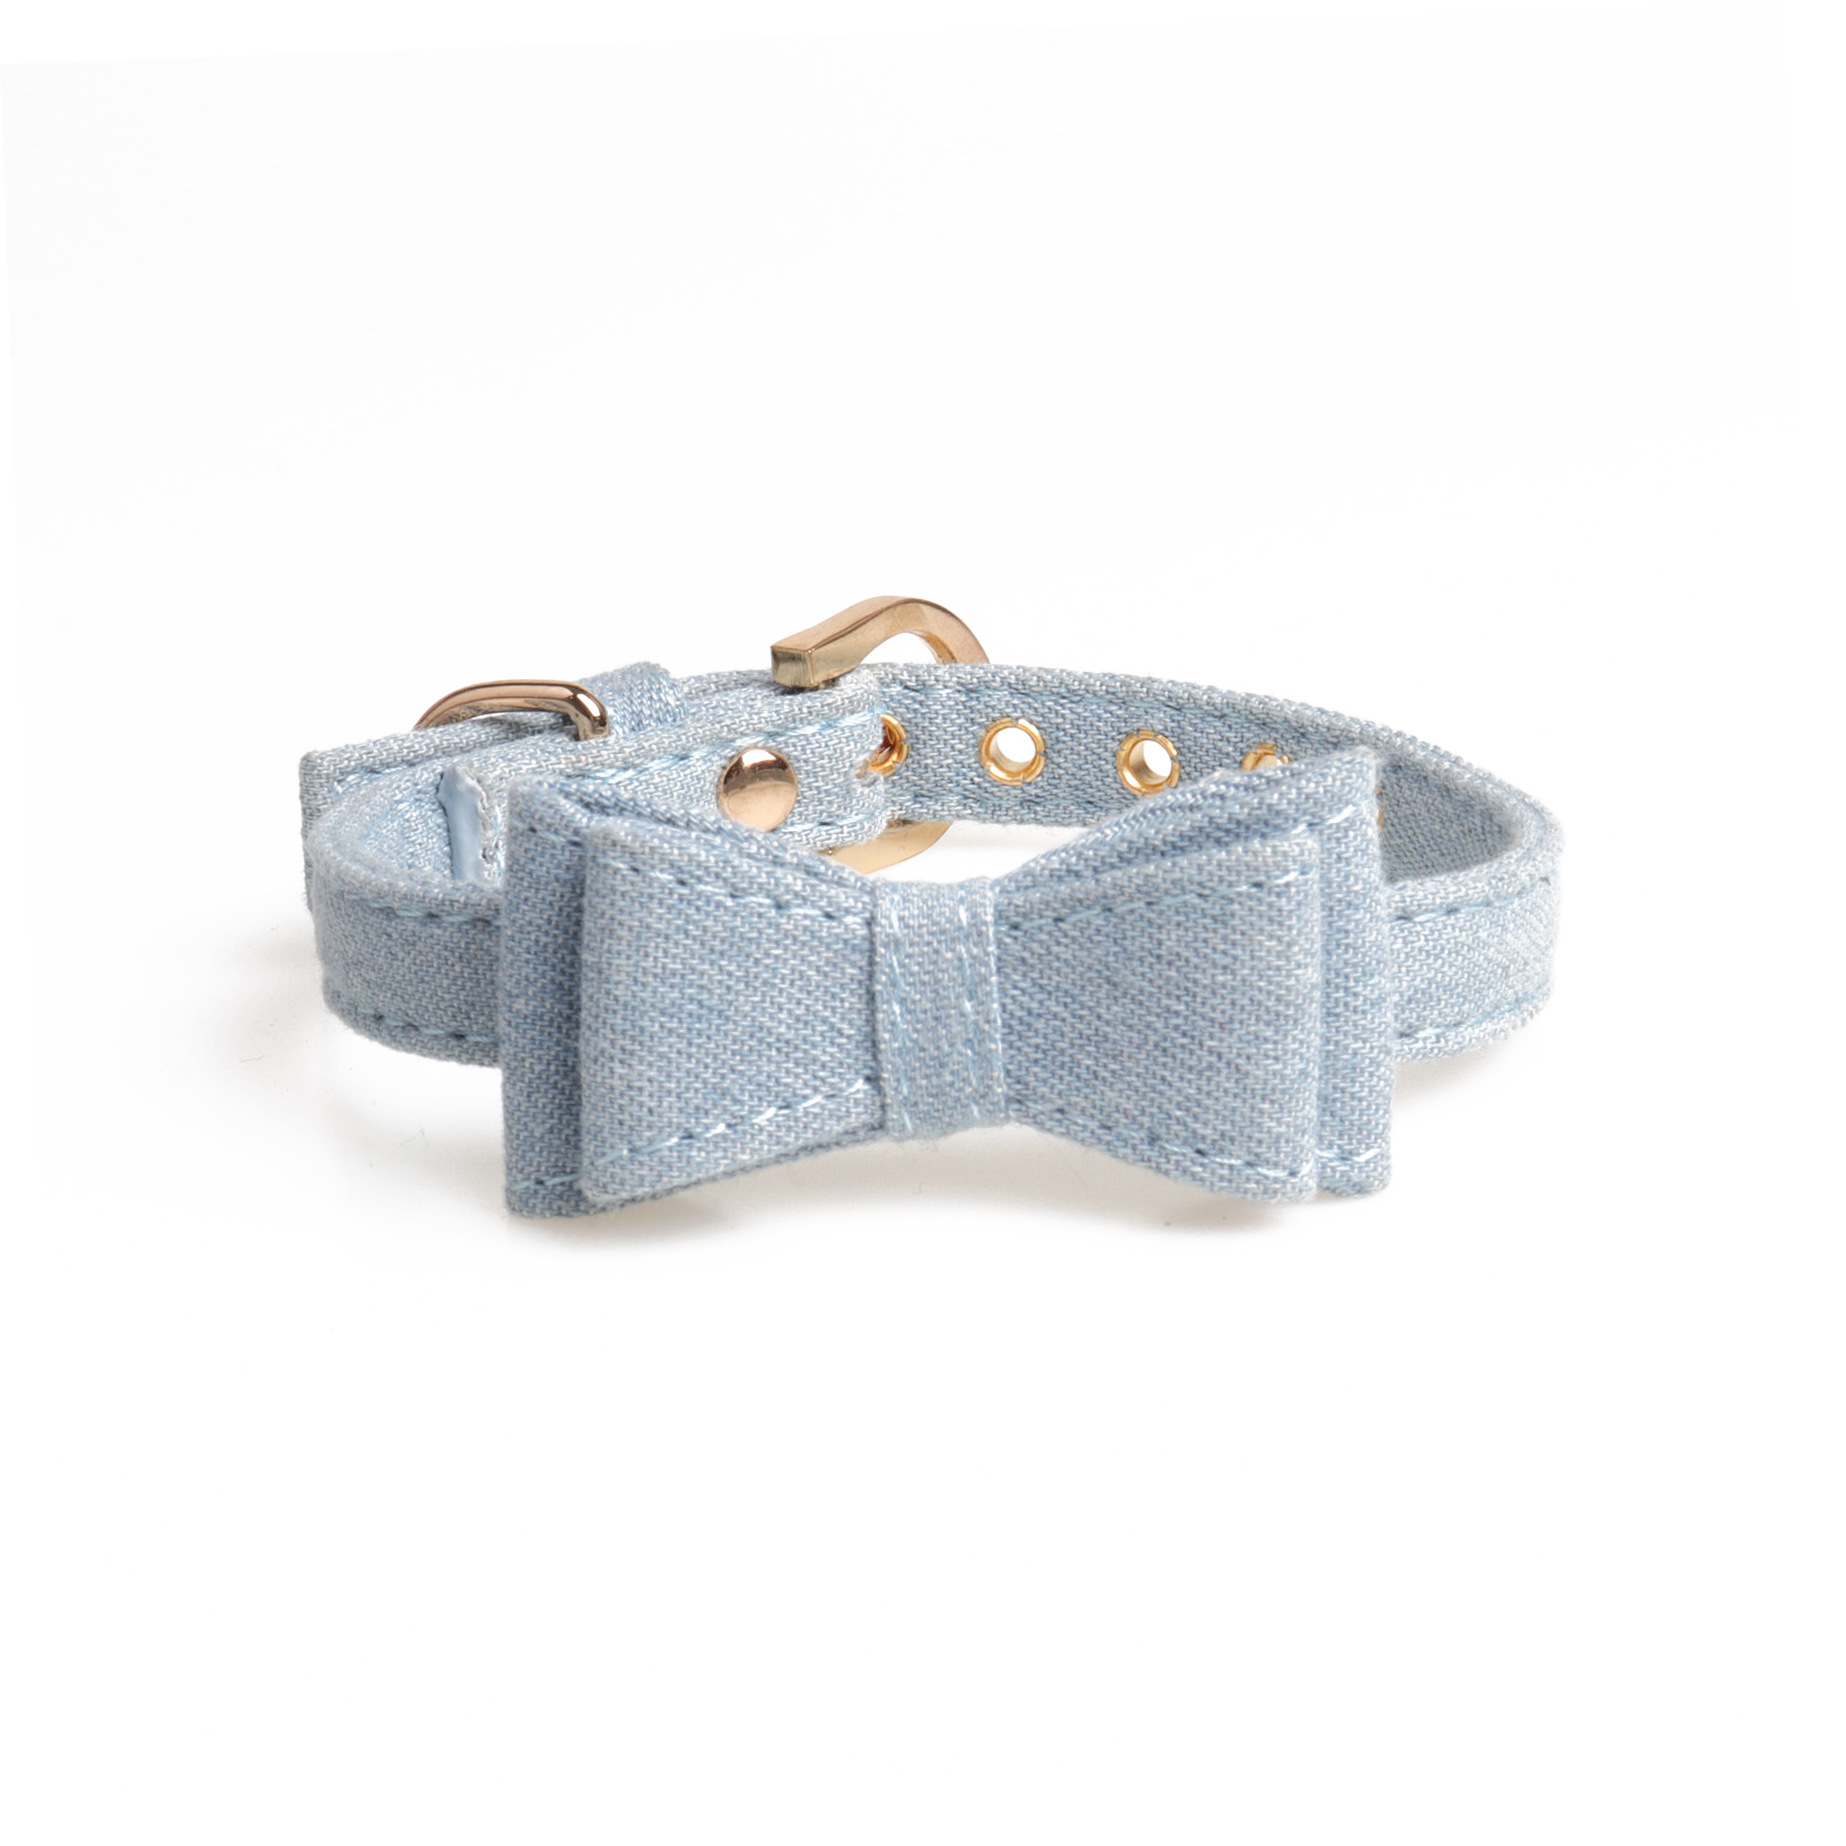 Amin Georgia Blue Color Cowboy Bow Neck Ring Pet Collar Small And Medium Dog Neck Ring Manufacturers Direct Selling